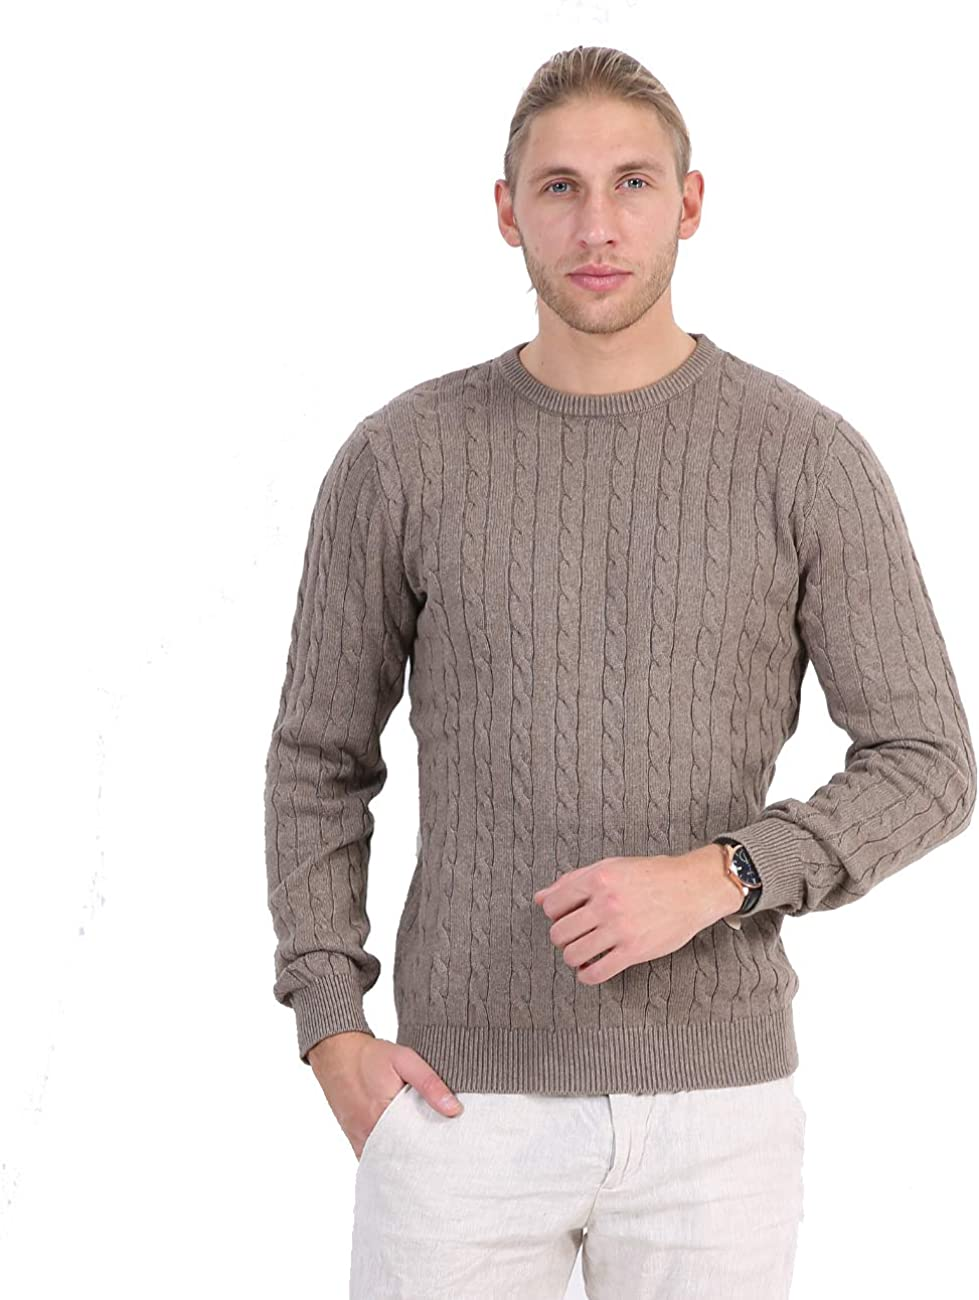 R.PRINCE Men' s Pullover Shirt Comfy Cotton Sweaters for Men Lightweight Cable Stitch Crewneck